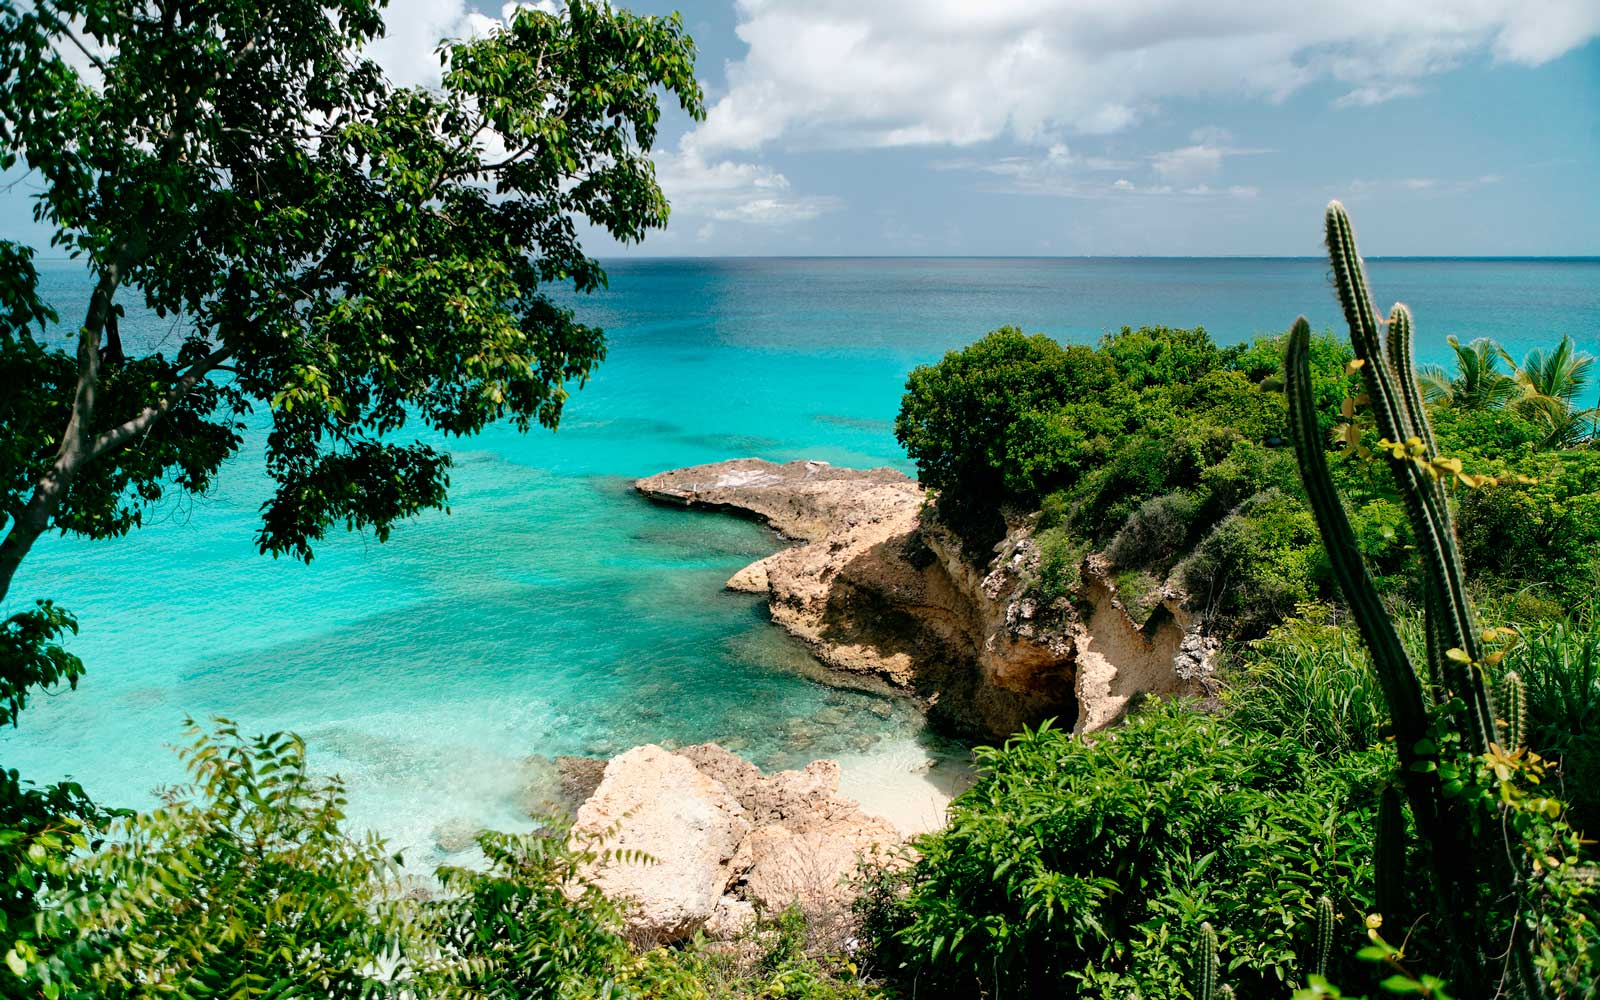 Why This is the Best Island in the Caribbean